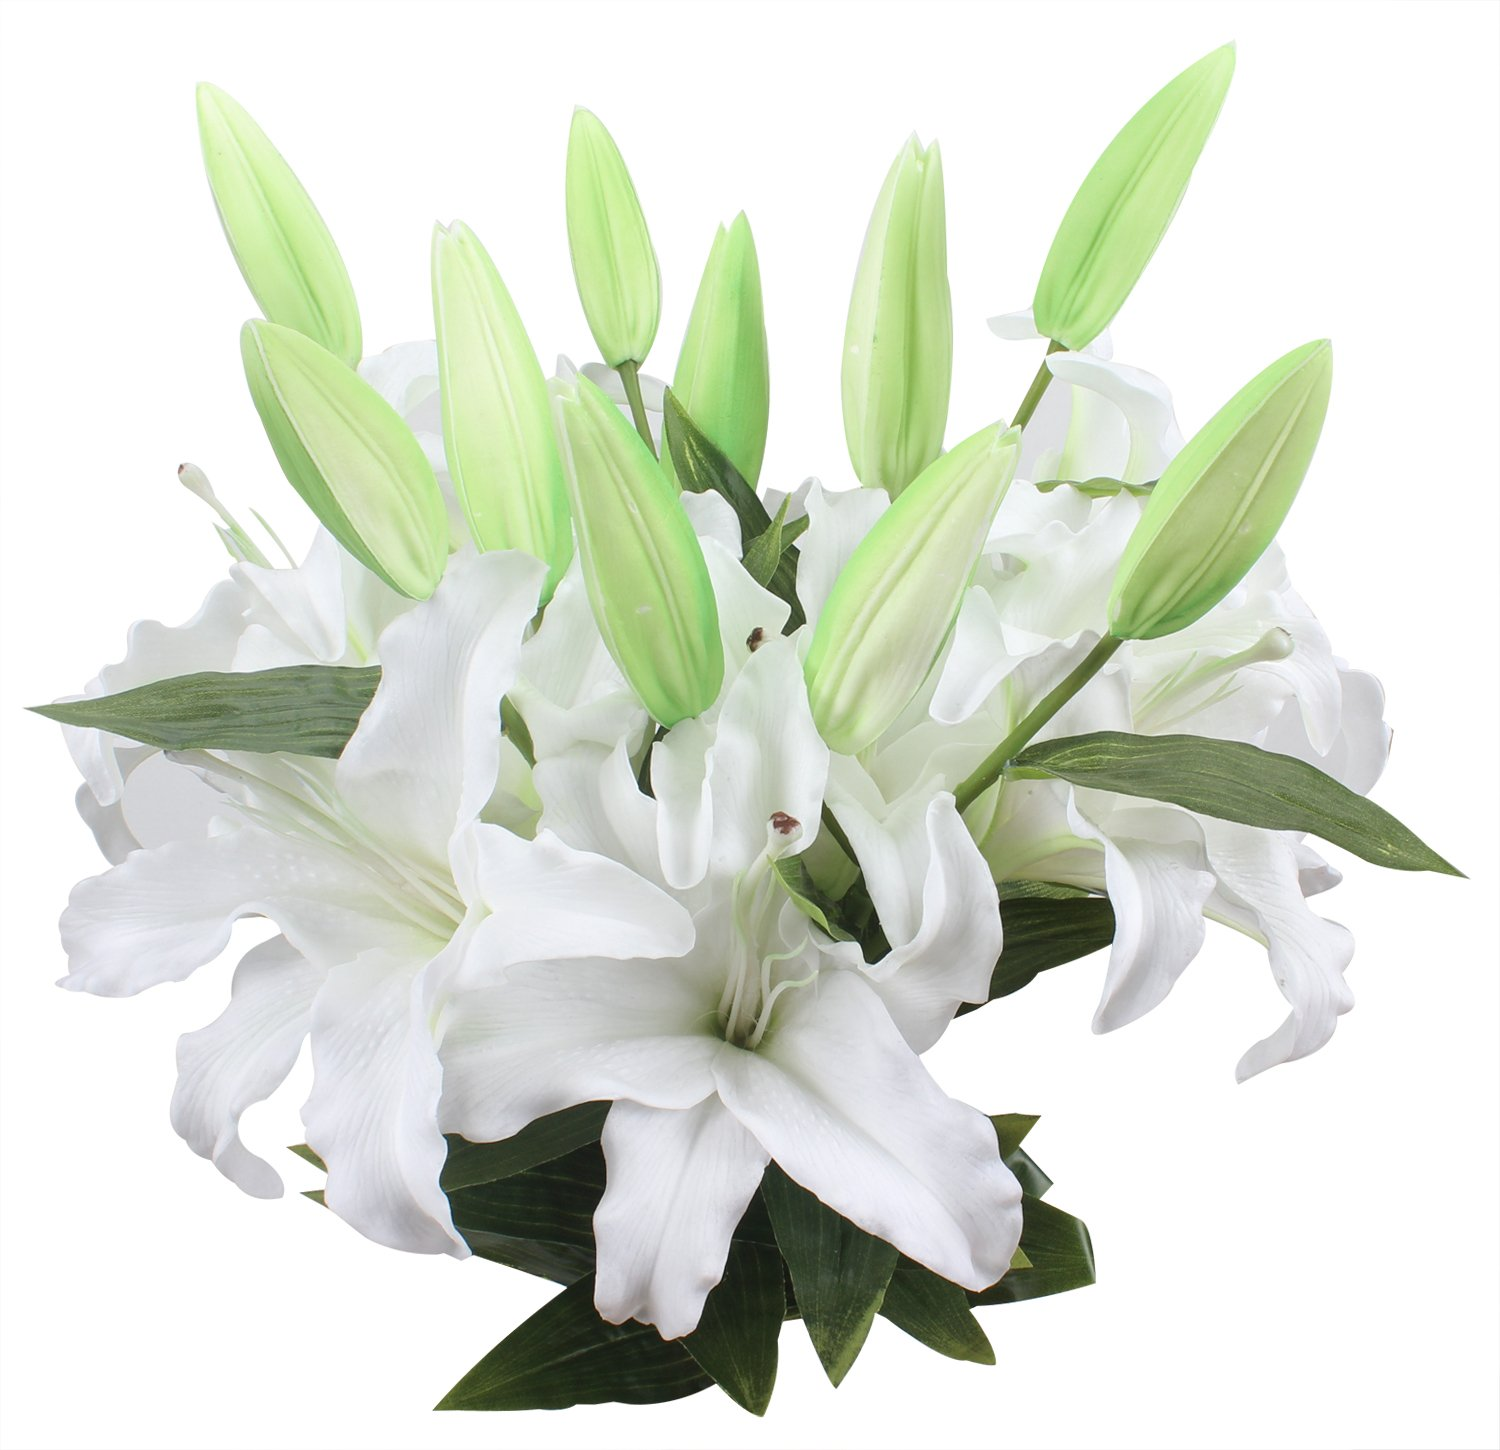 Amazon duovlo 34 artificial white lilies bouquets real touch amazon duovlo 34 artificial white lilies bouquets real touch tiger lily flowers with 4 heads for wedding home party decorpack of 2 home kitchen izmirmasajfo